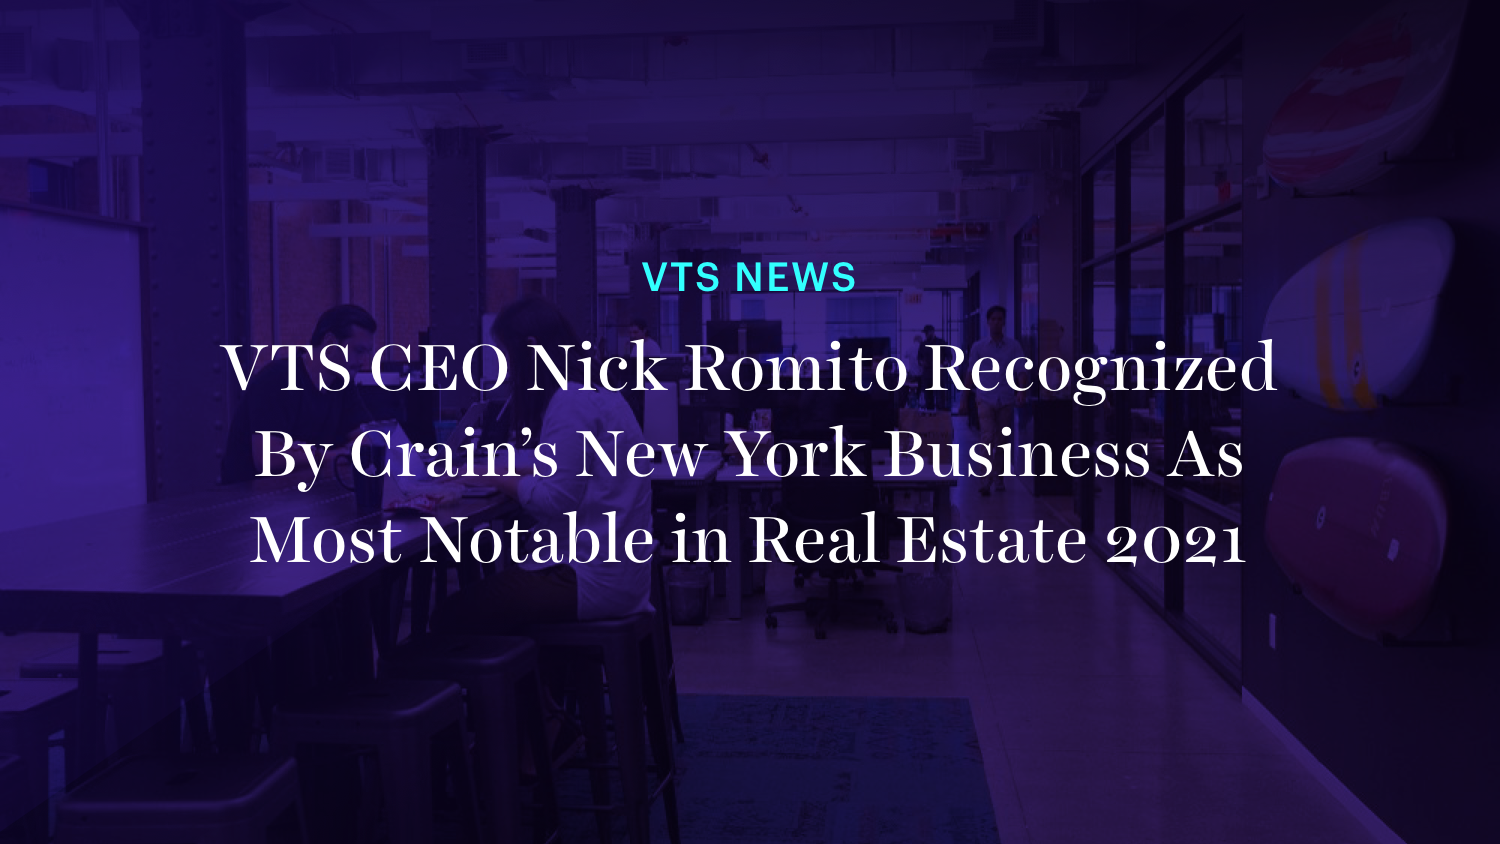 VTS CEO Nick Romito Recognized By Crain's New York Business As Most Notable in Real Estate 2021